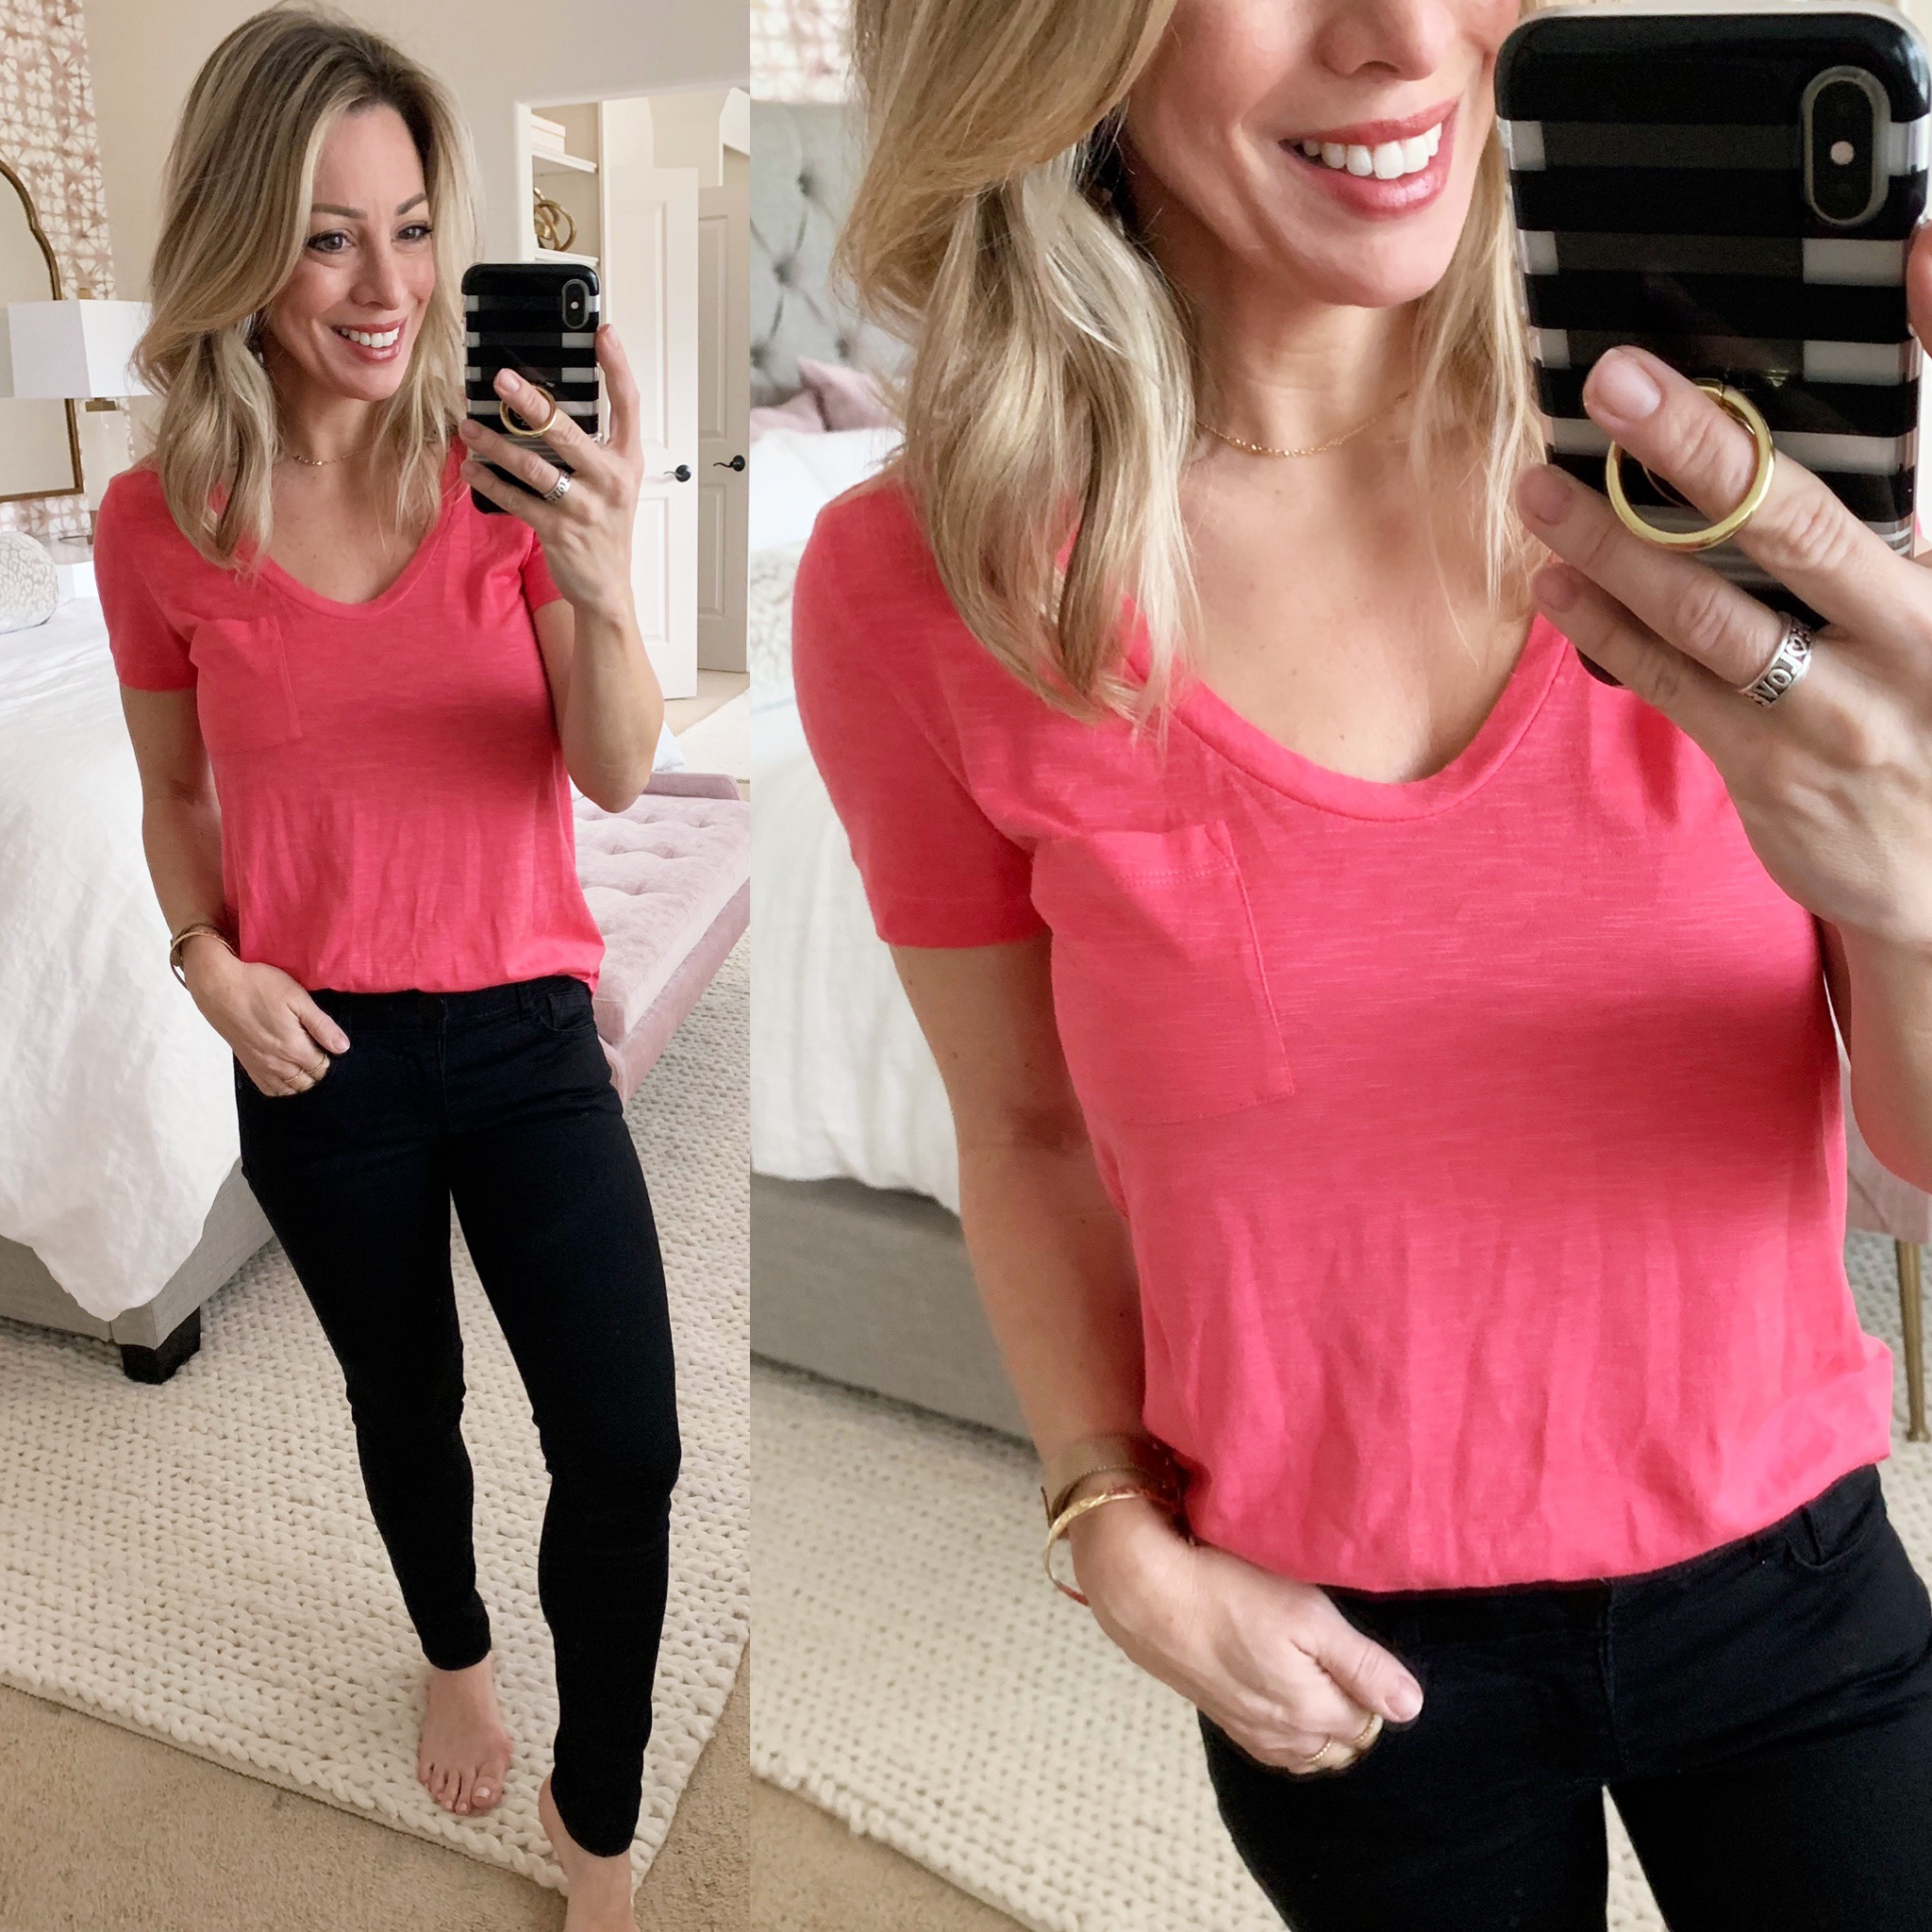 Cute casual outfit - pocket t shirt and black jeans